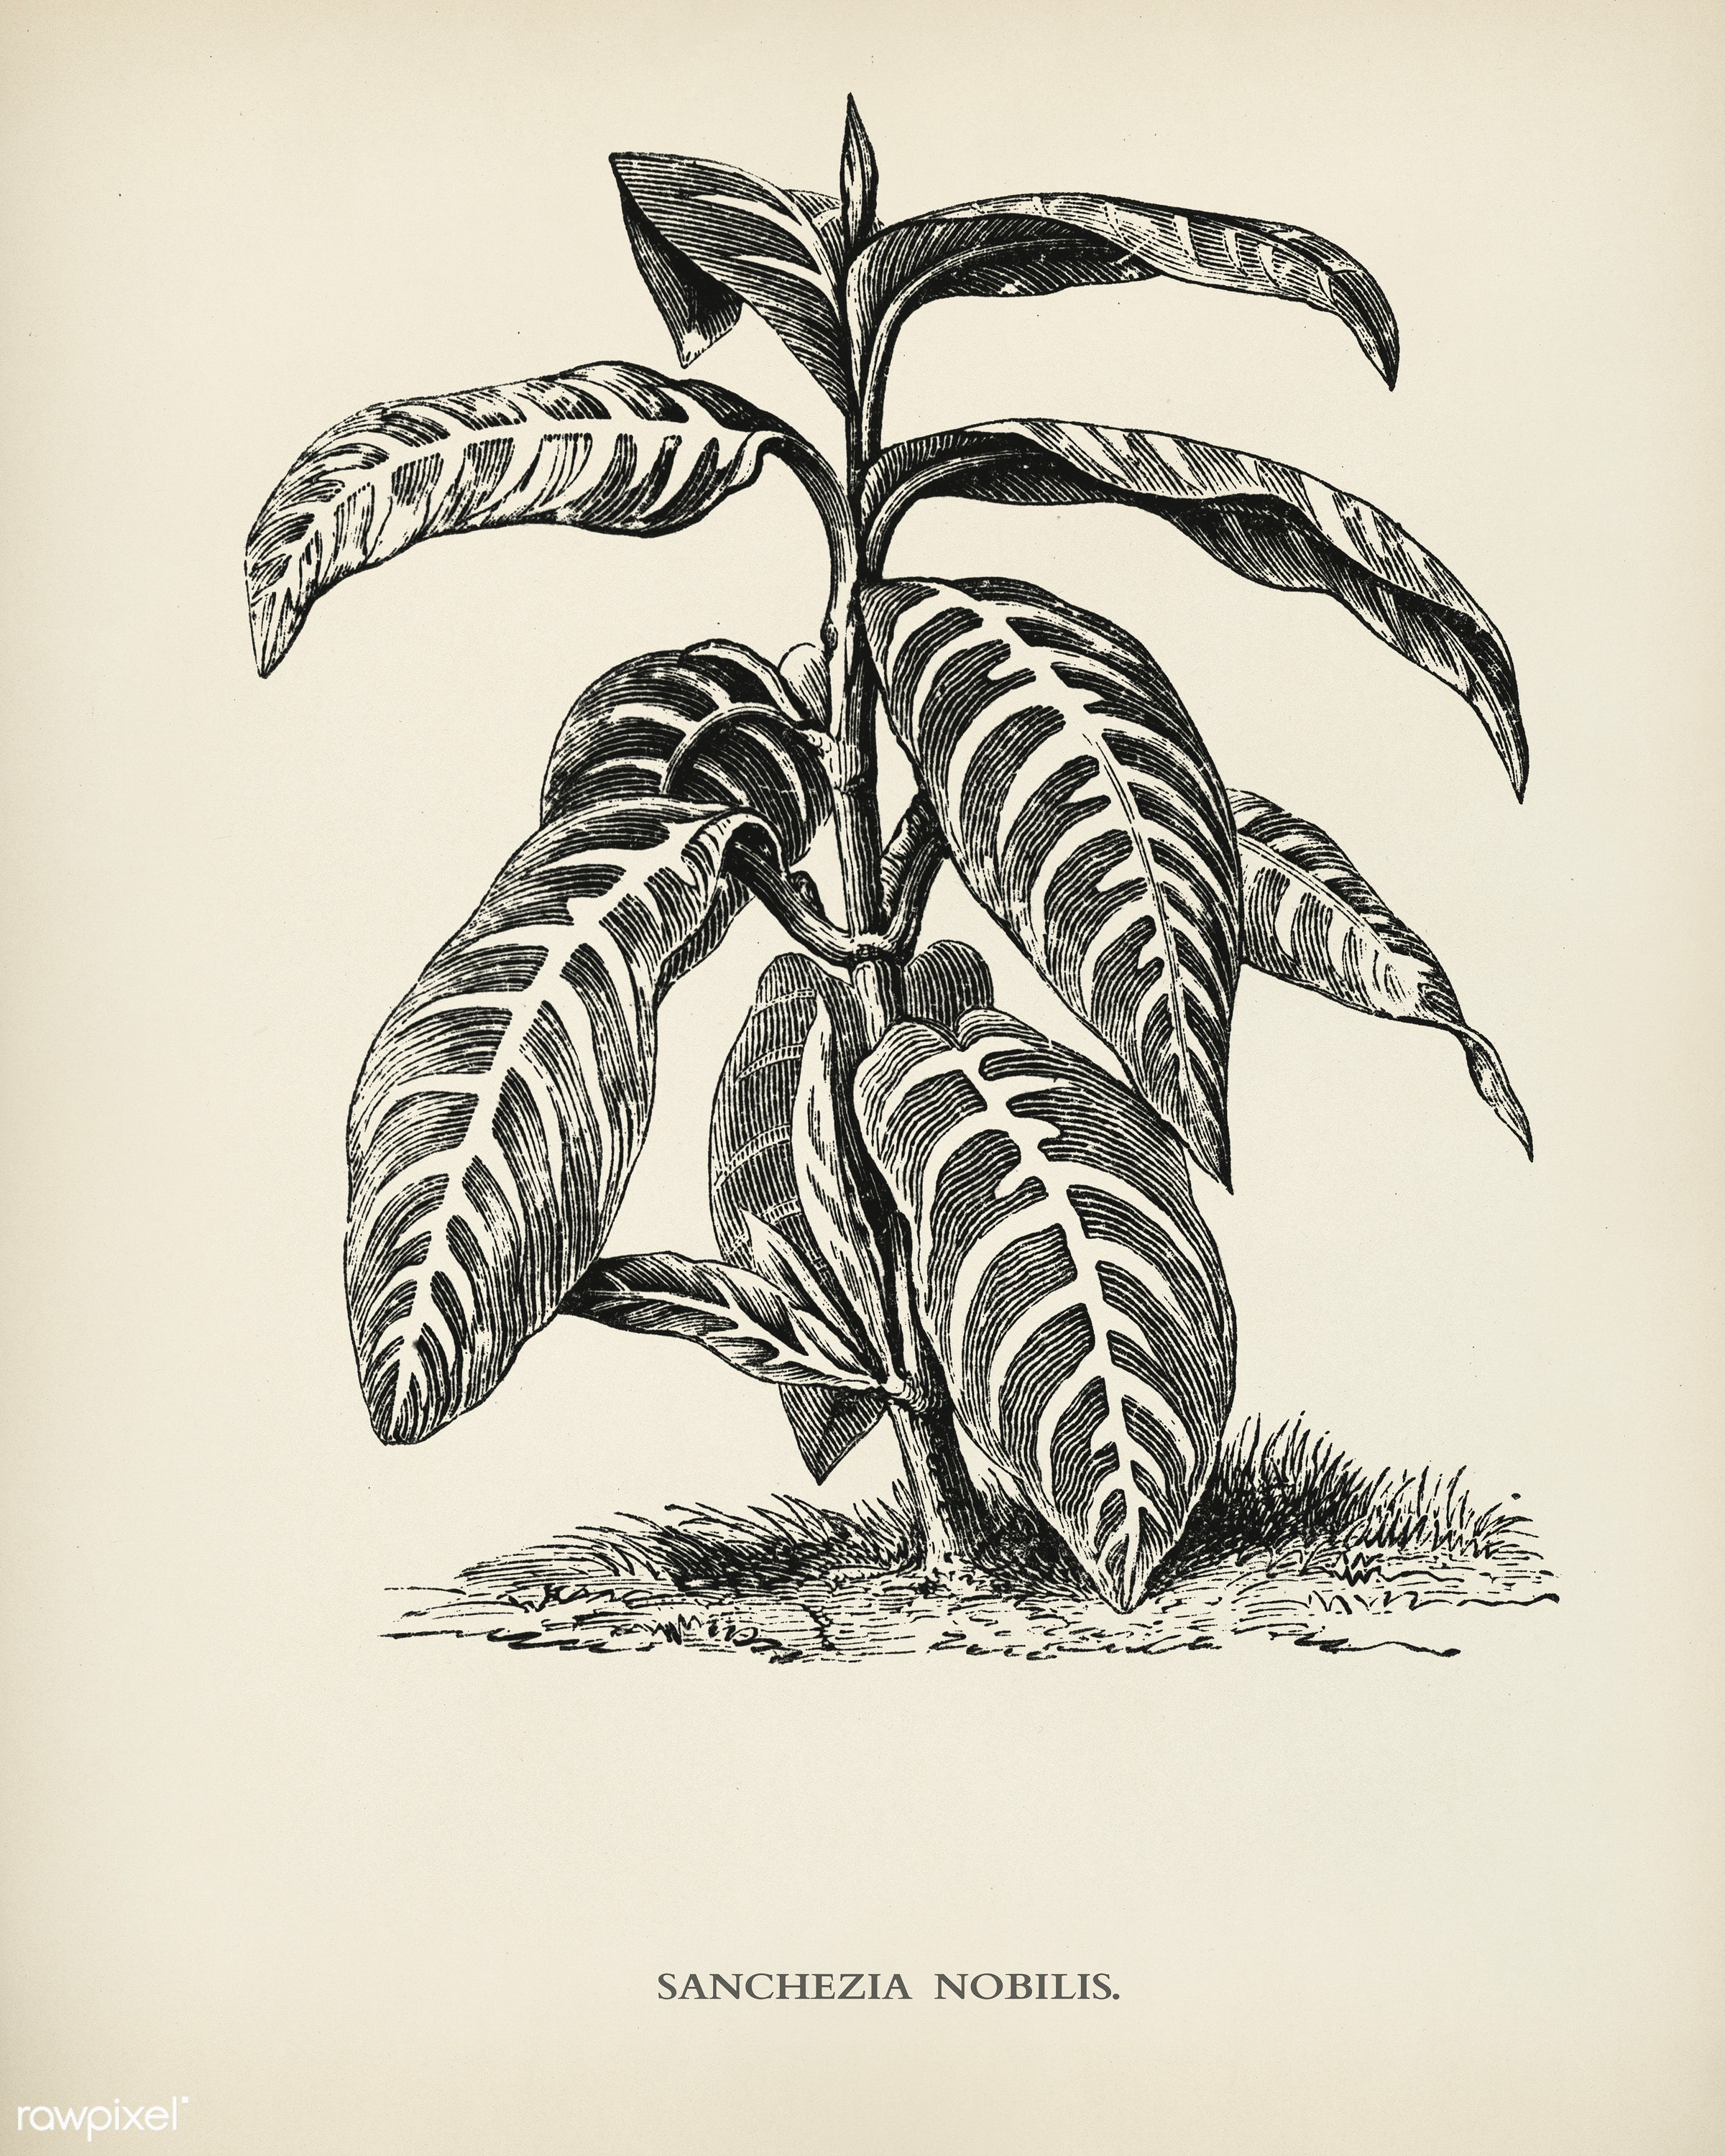 Sanchezia Nobilis engraved by Benjamin Fawcett (1808-1893) for Shirley Hibberd's (1825-1890) New and Rare Beautiful-...